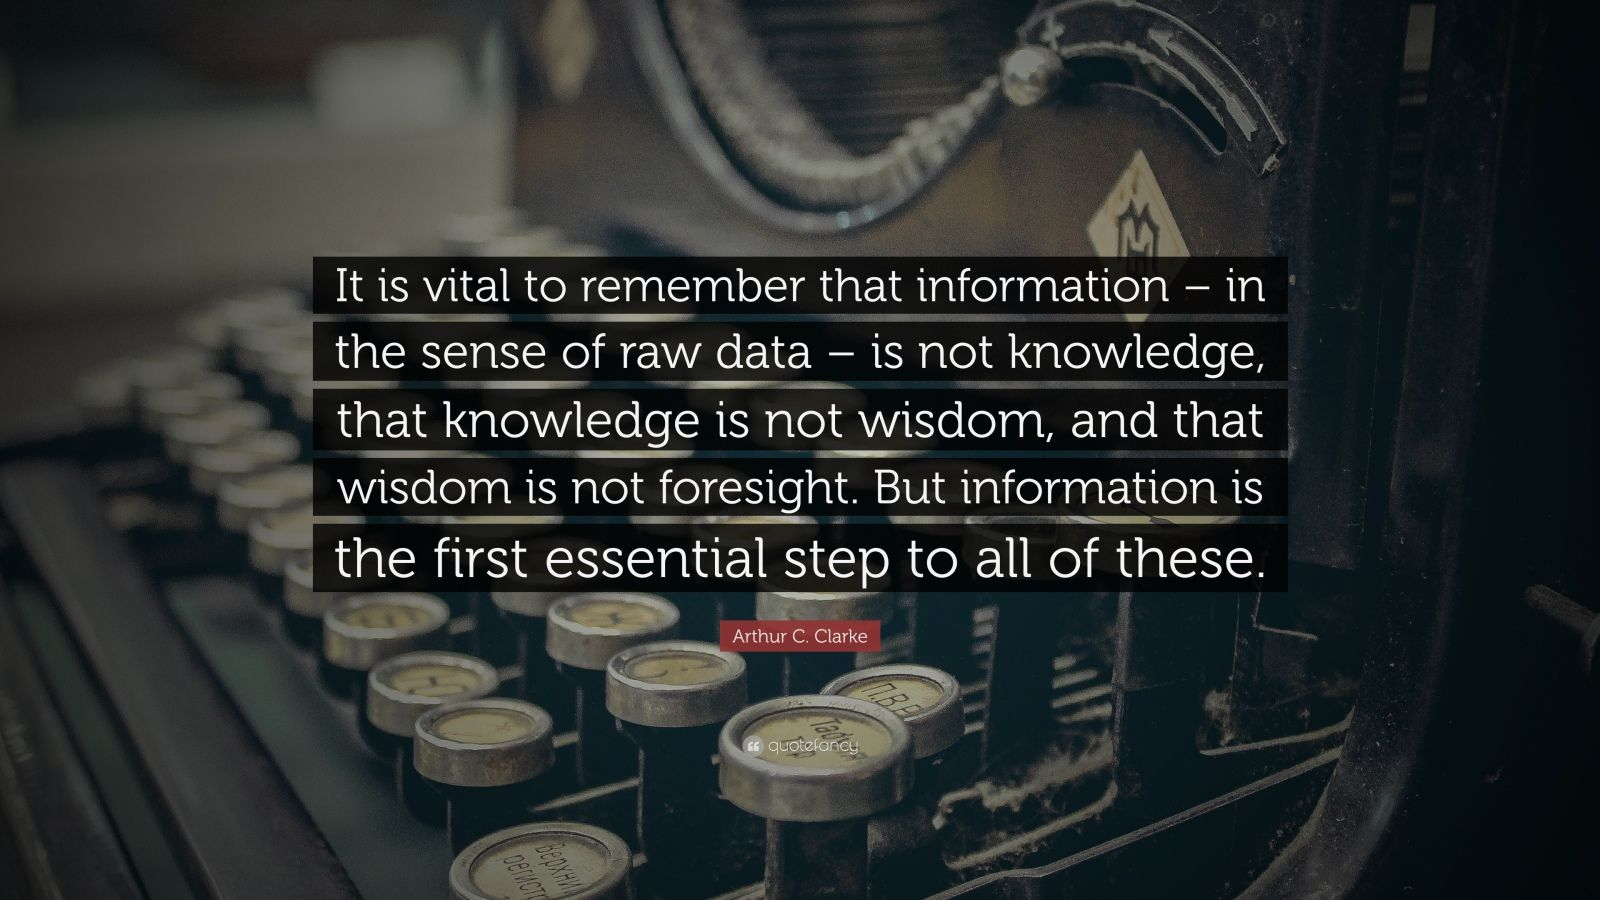 """Arthur C. Clarke Quote: """"It is vital to remember that information – in the sense of raw data – is not knowledge, that knowledge is not wisdom, and that wisdom is not foresight. But information is the first essential step to all of these."""""""